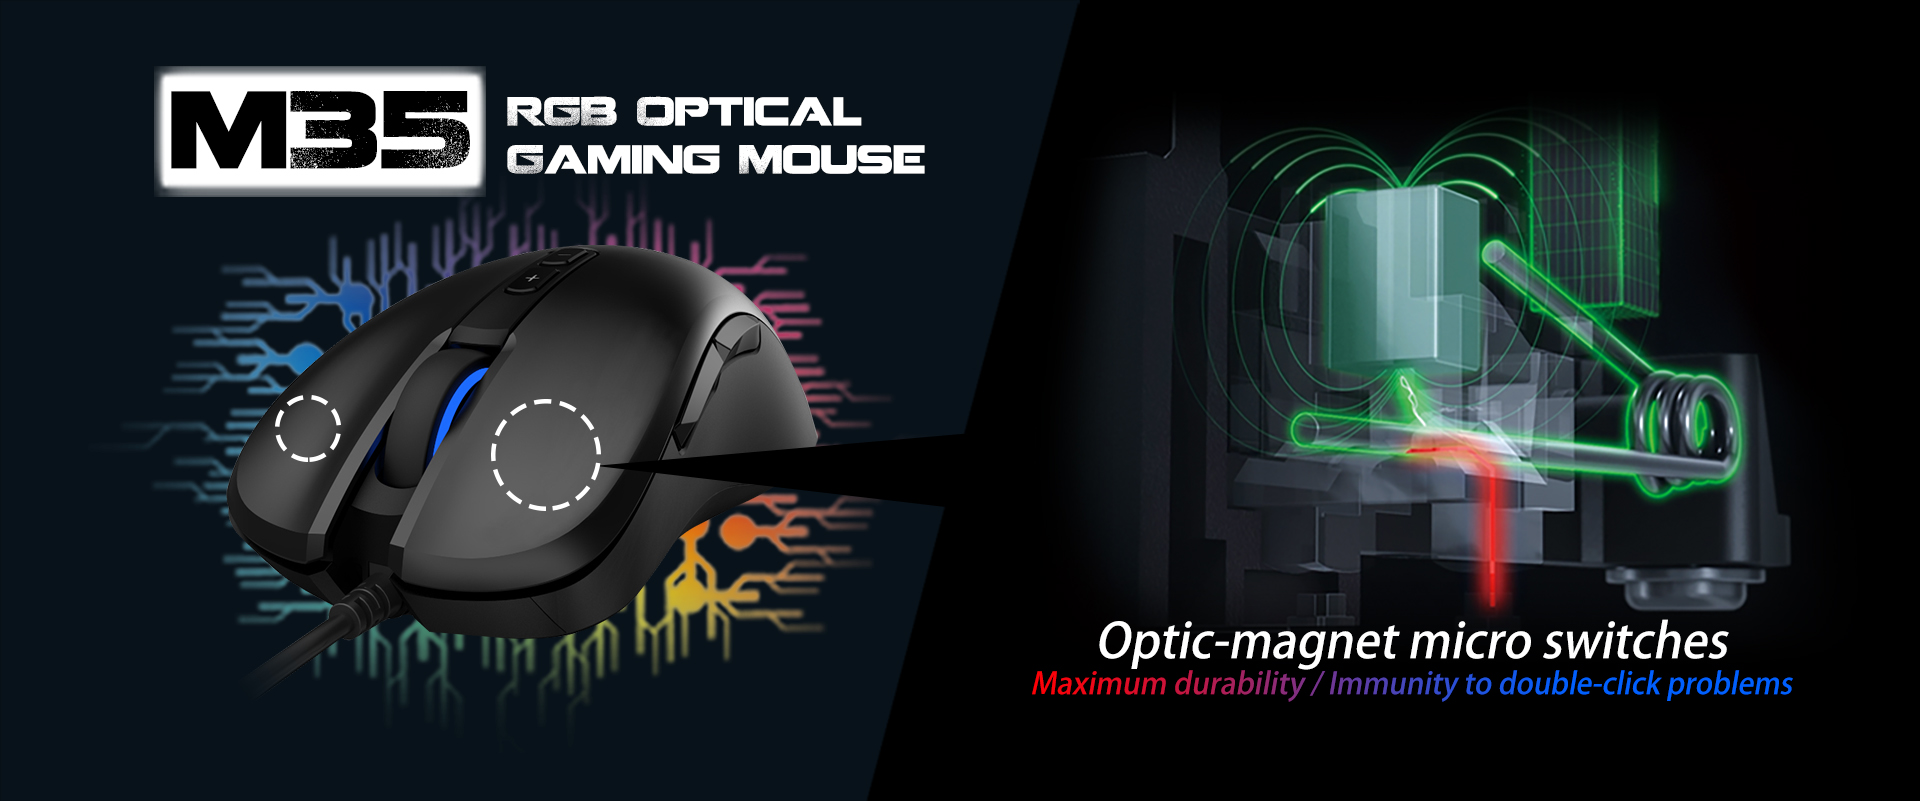 M35 RGB Optical Gaming Mouse